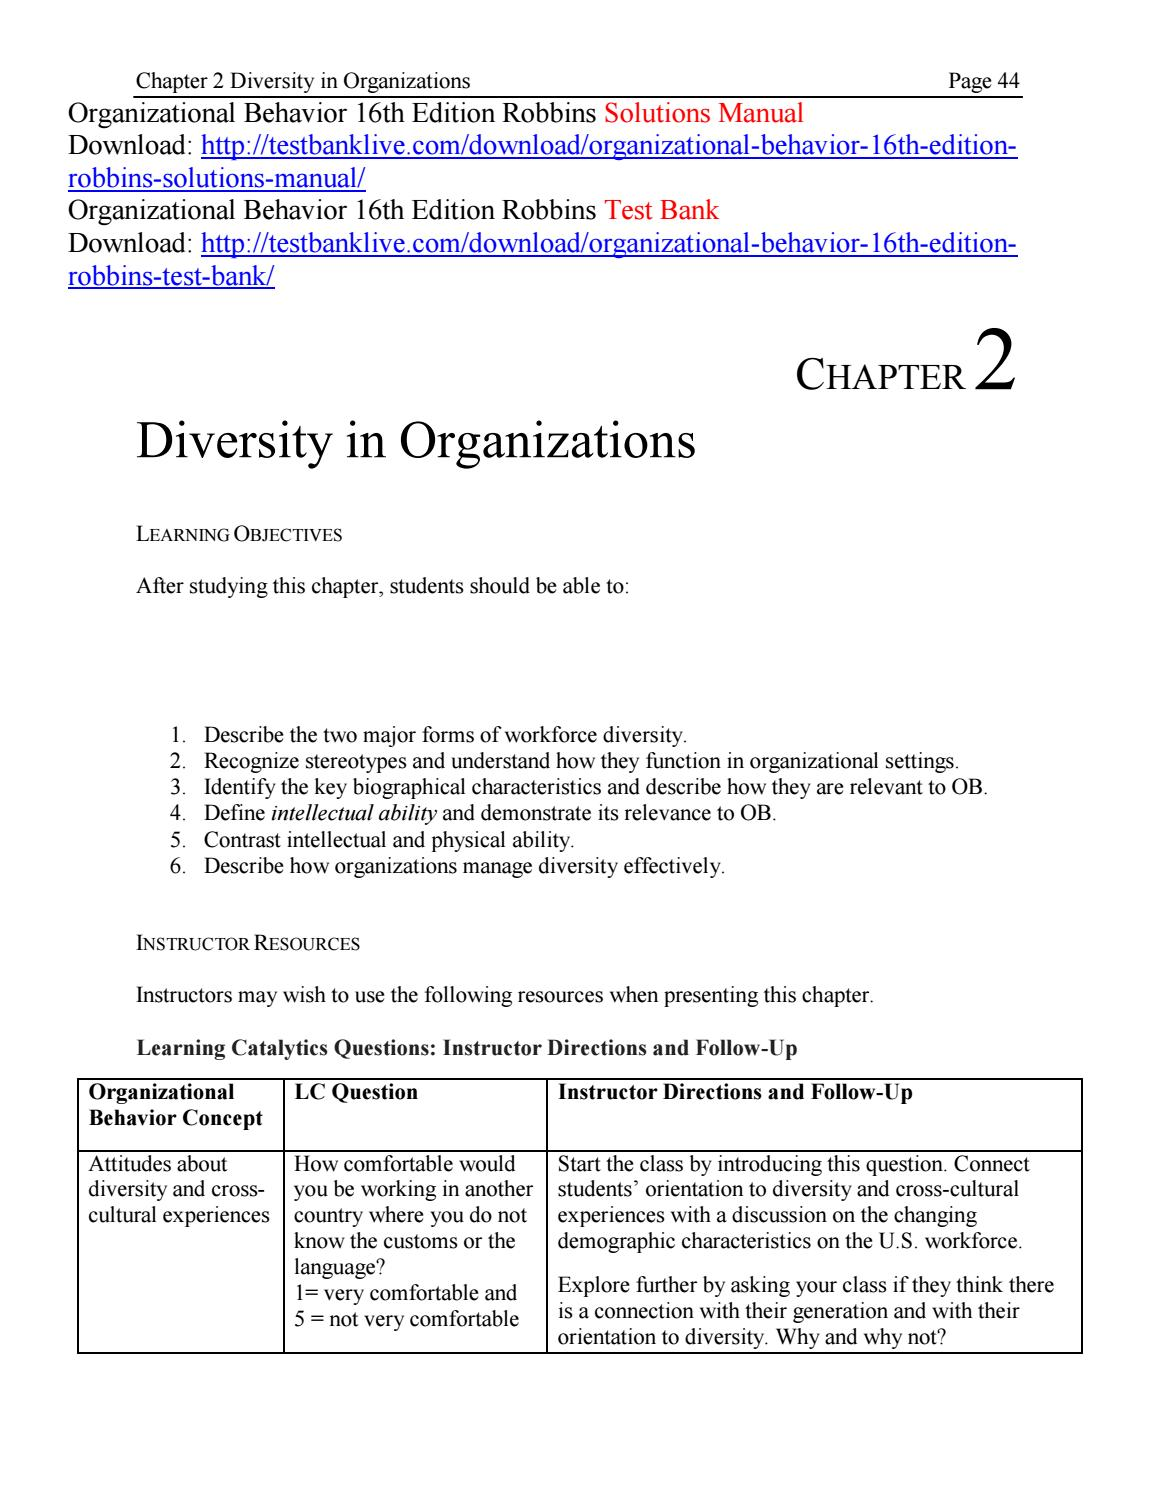 Chapter 5 instructor manual array organizational behavior 16th edition robbins solutions manual by rh issuu com fandeluxe Images